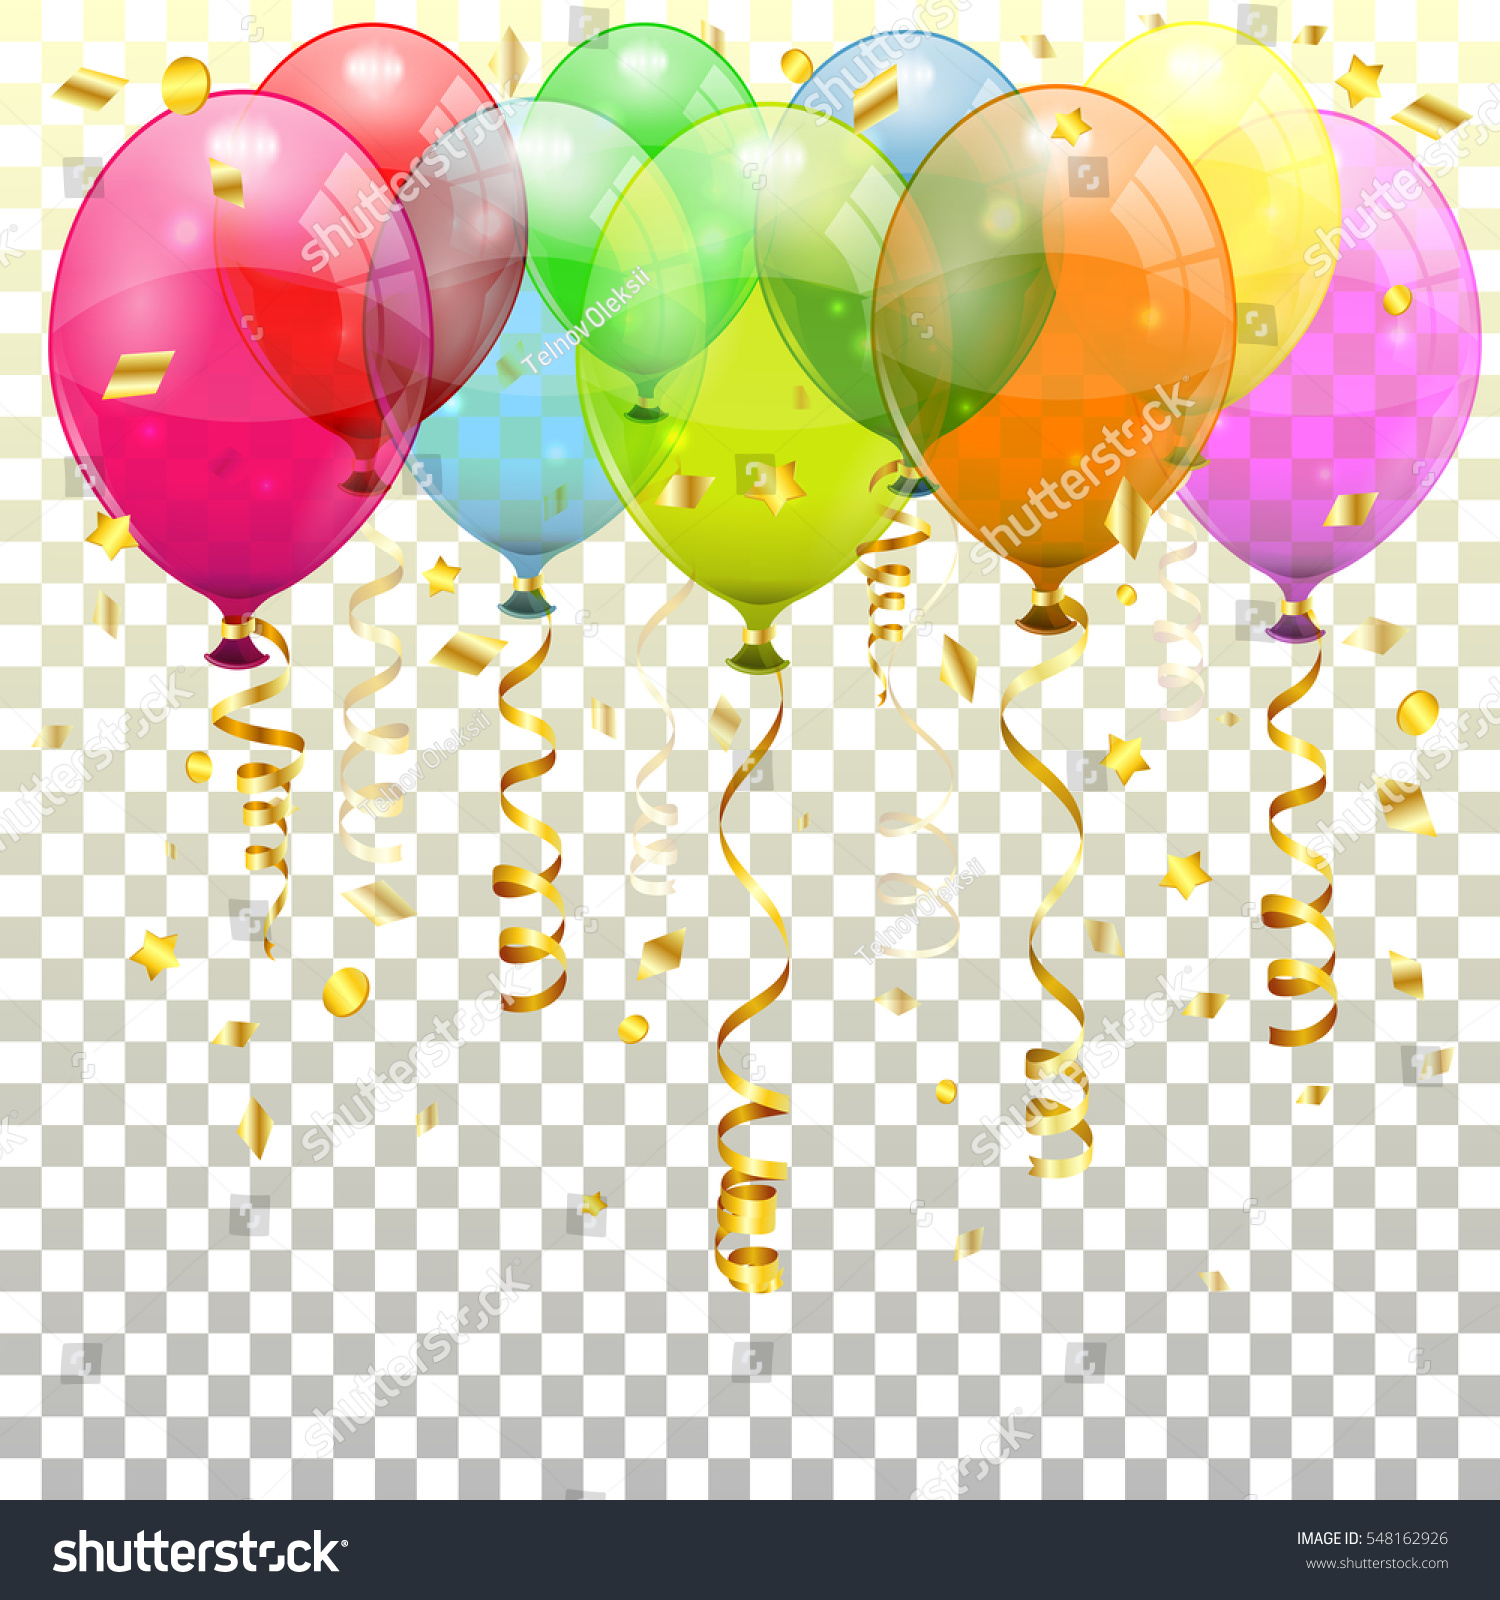 Holiday Background With Balloons And Confetti. Royalty Free ...